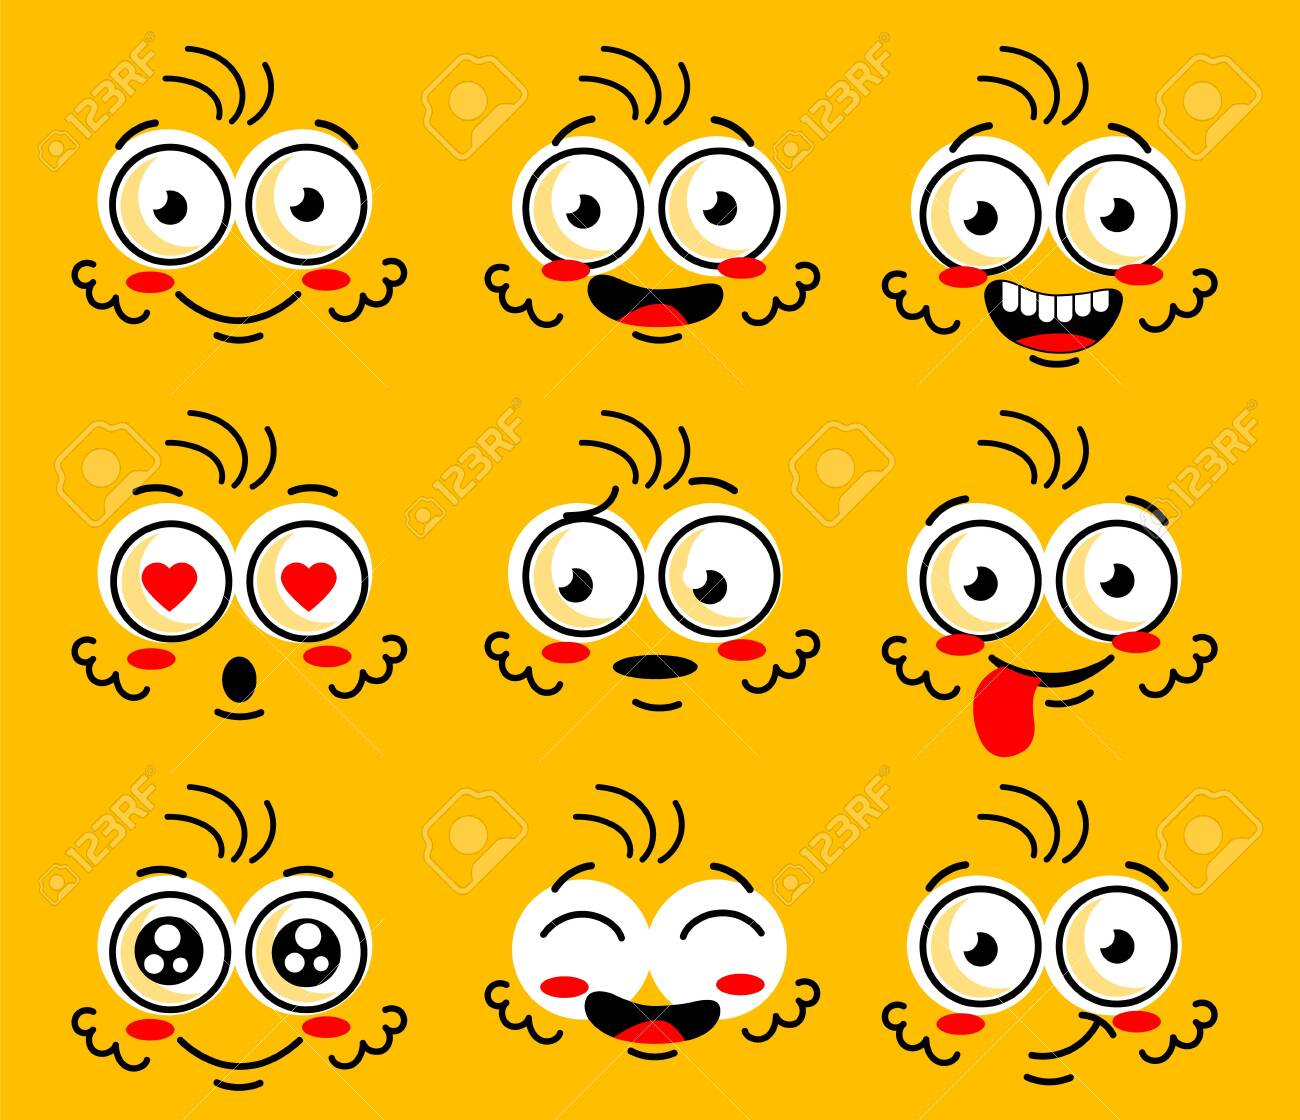 Cartoon face character. Funny face parts with expressions emotion eye Comic doodle smile face, angry, sad, cute and smiley eye. Cartoon faces expressions set isolated on yellow background. - 147277849